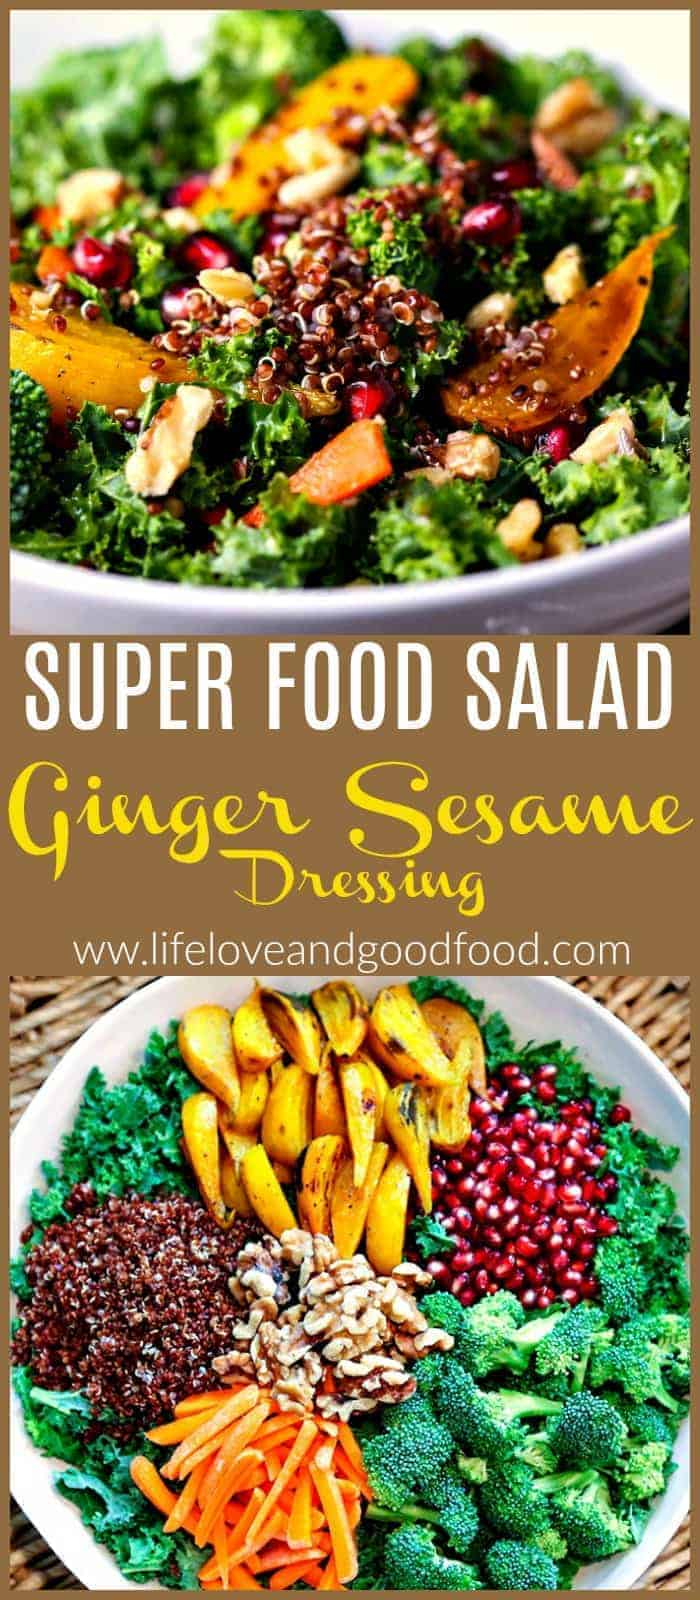 Super Food Salad with Ginger Sesame Dressing has amazing color, interesting ingredients, crunchy texture, and delicious taste! #salad #superfood #kalesalad